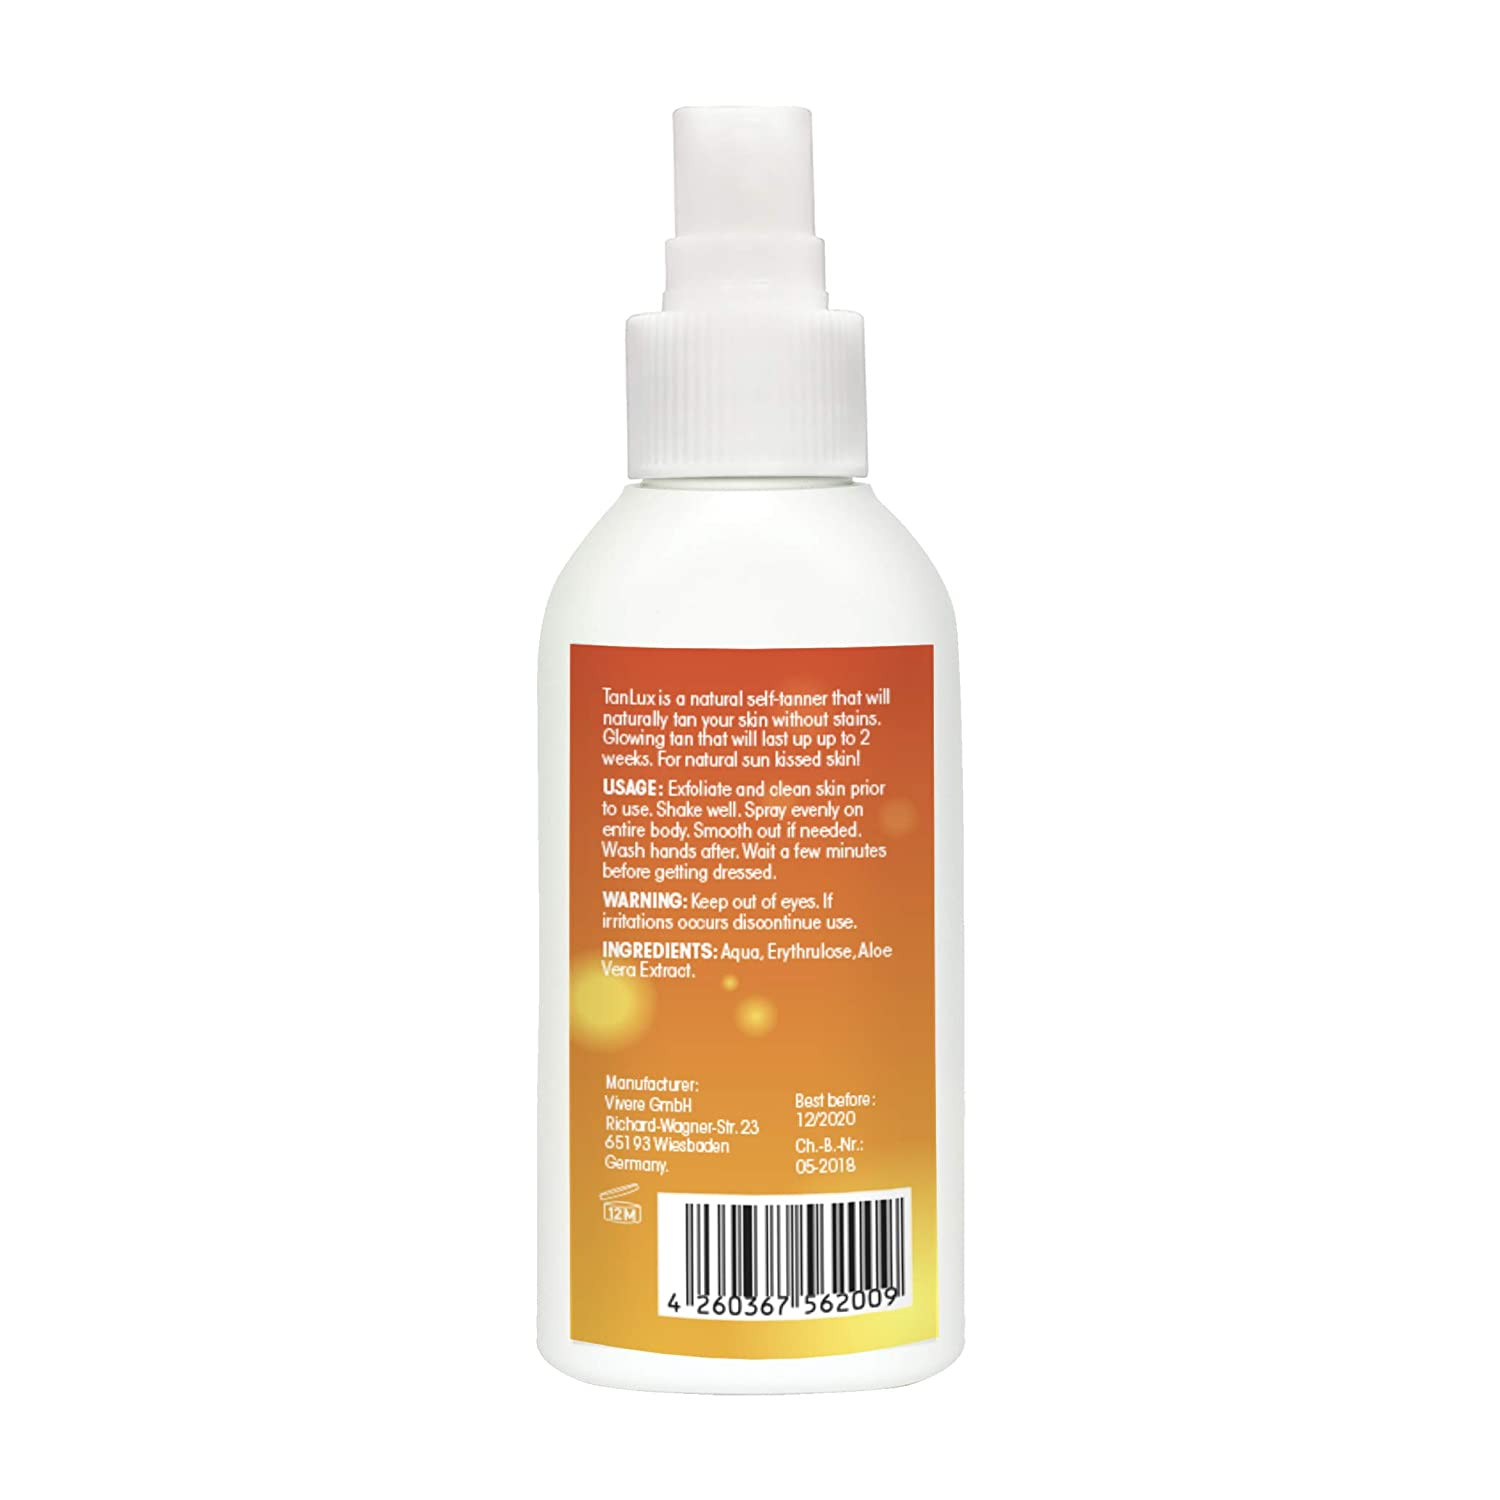 Best Tanning Lotion 2020 Amazon.: Natural tanning spray by TanLux | 100ml organic skin